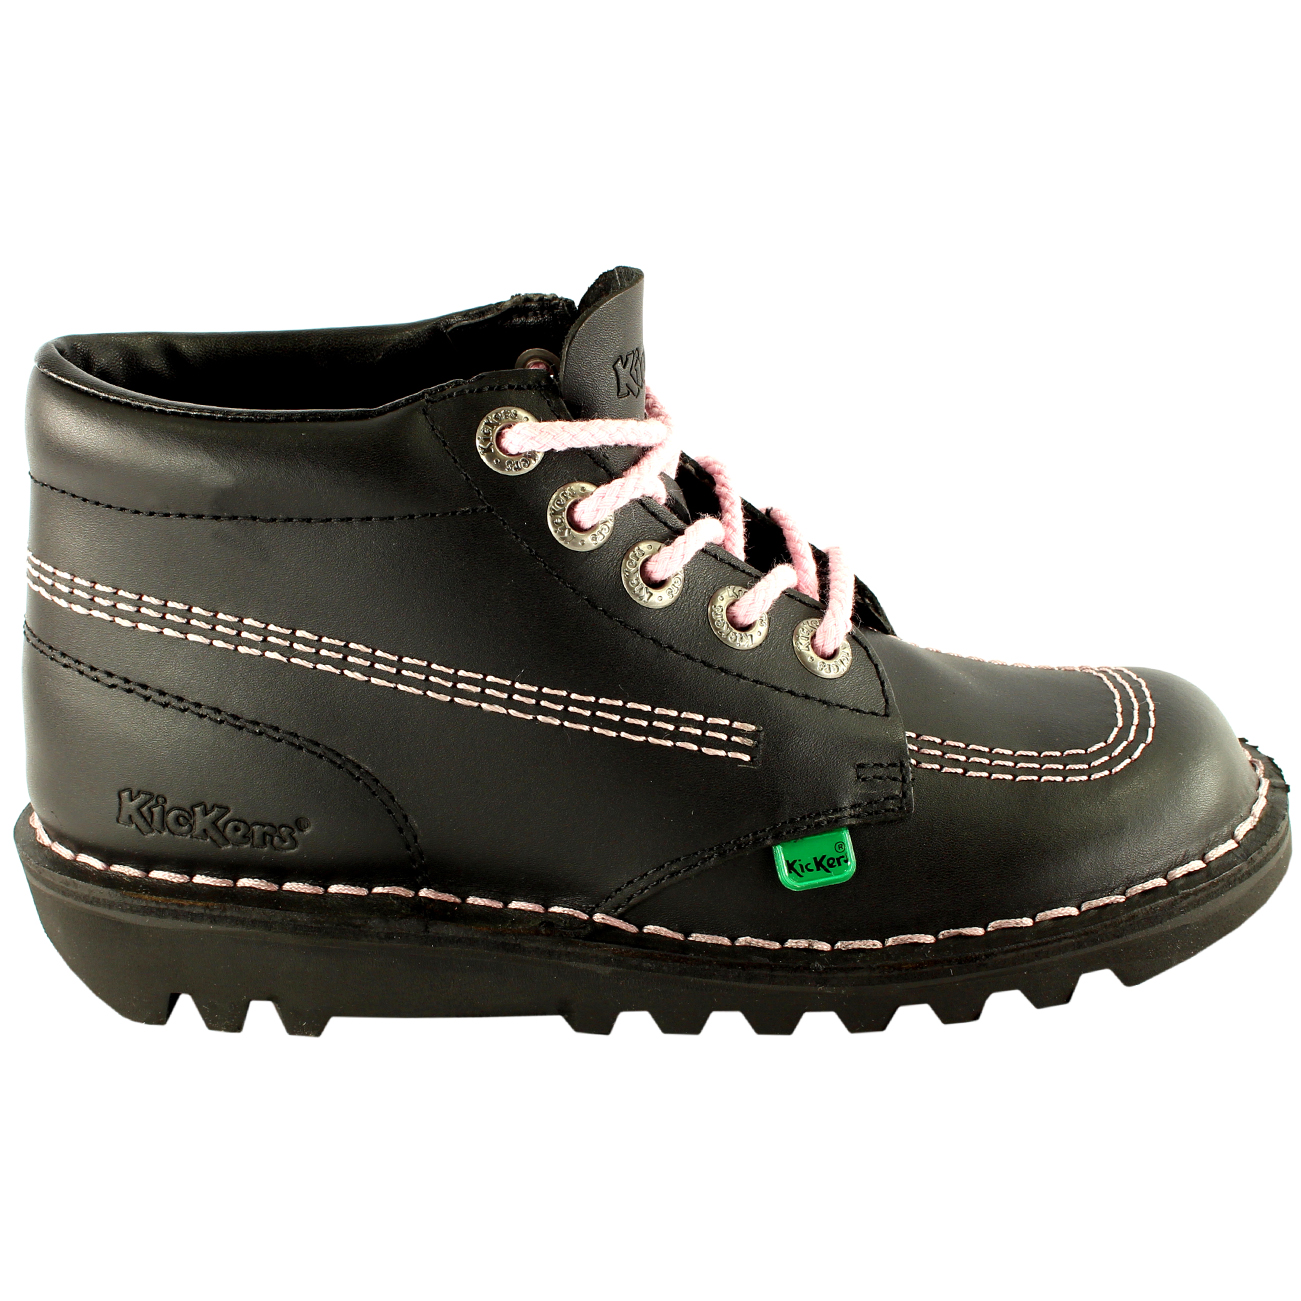 Unisex Kids Youth Kickers Kick Hi Back To School Leather Ankle Boot Shoes US 4-6 | EBay